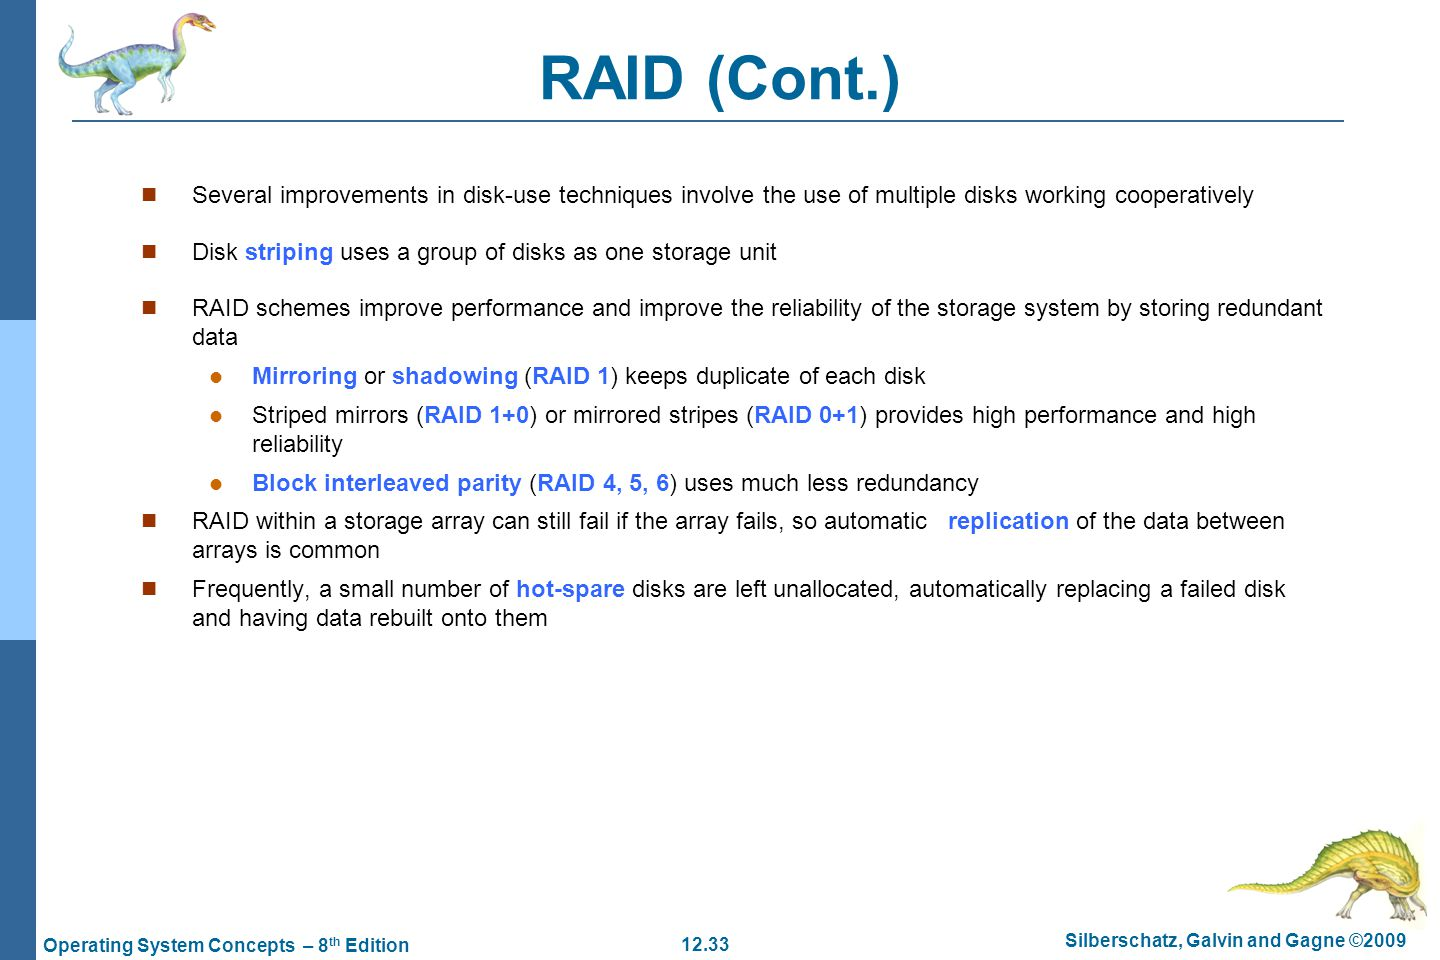 RAID (Cont.) Several improvements in disk-use techniques involve the use of multiple disks working cooperatively.